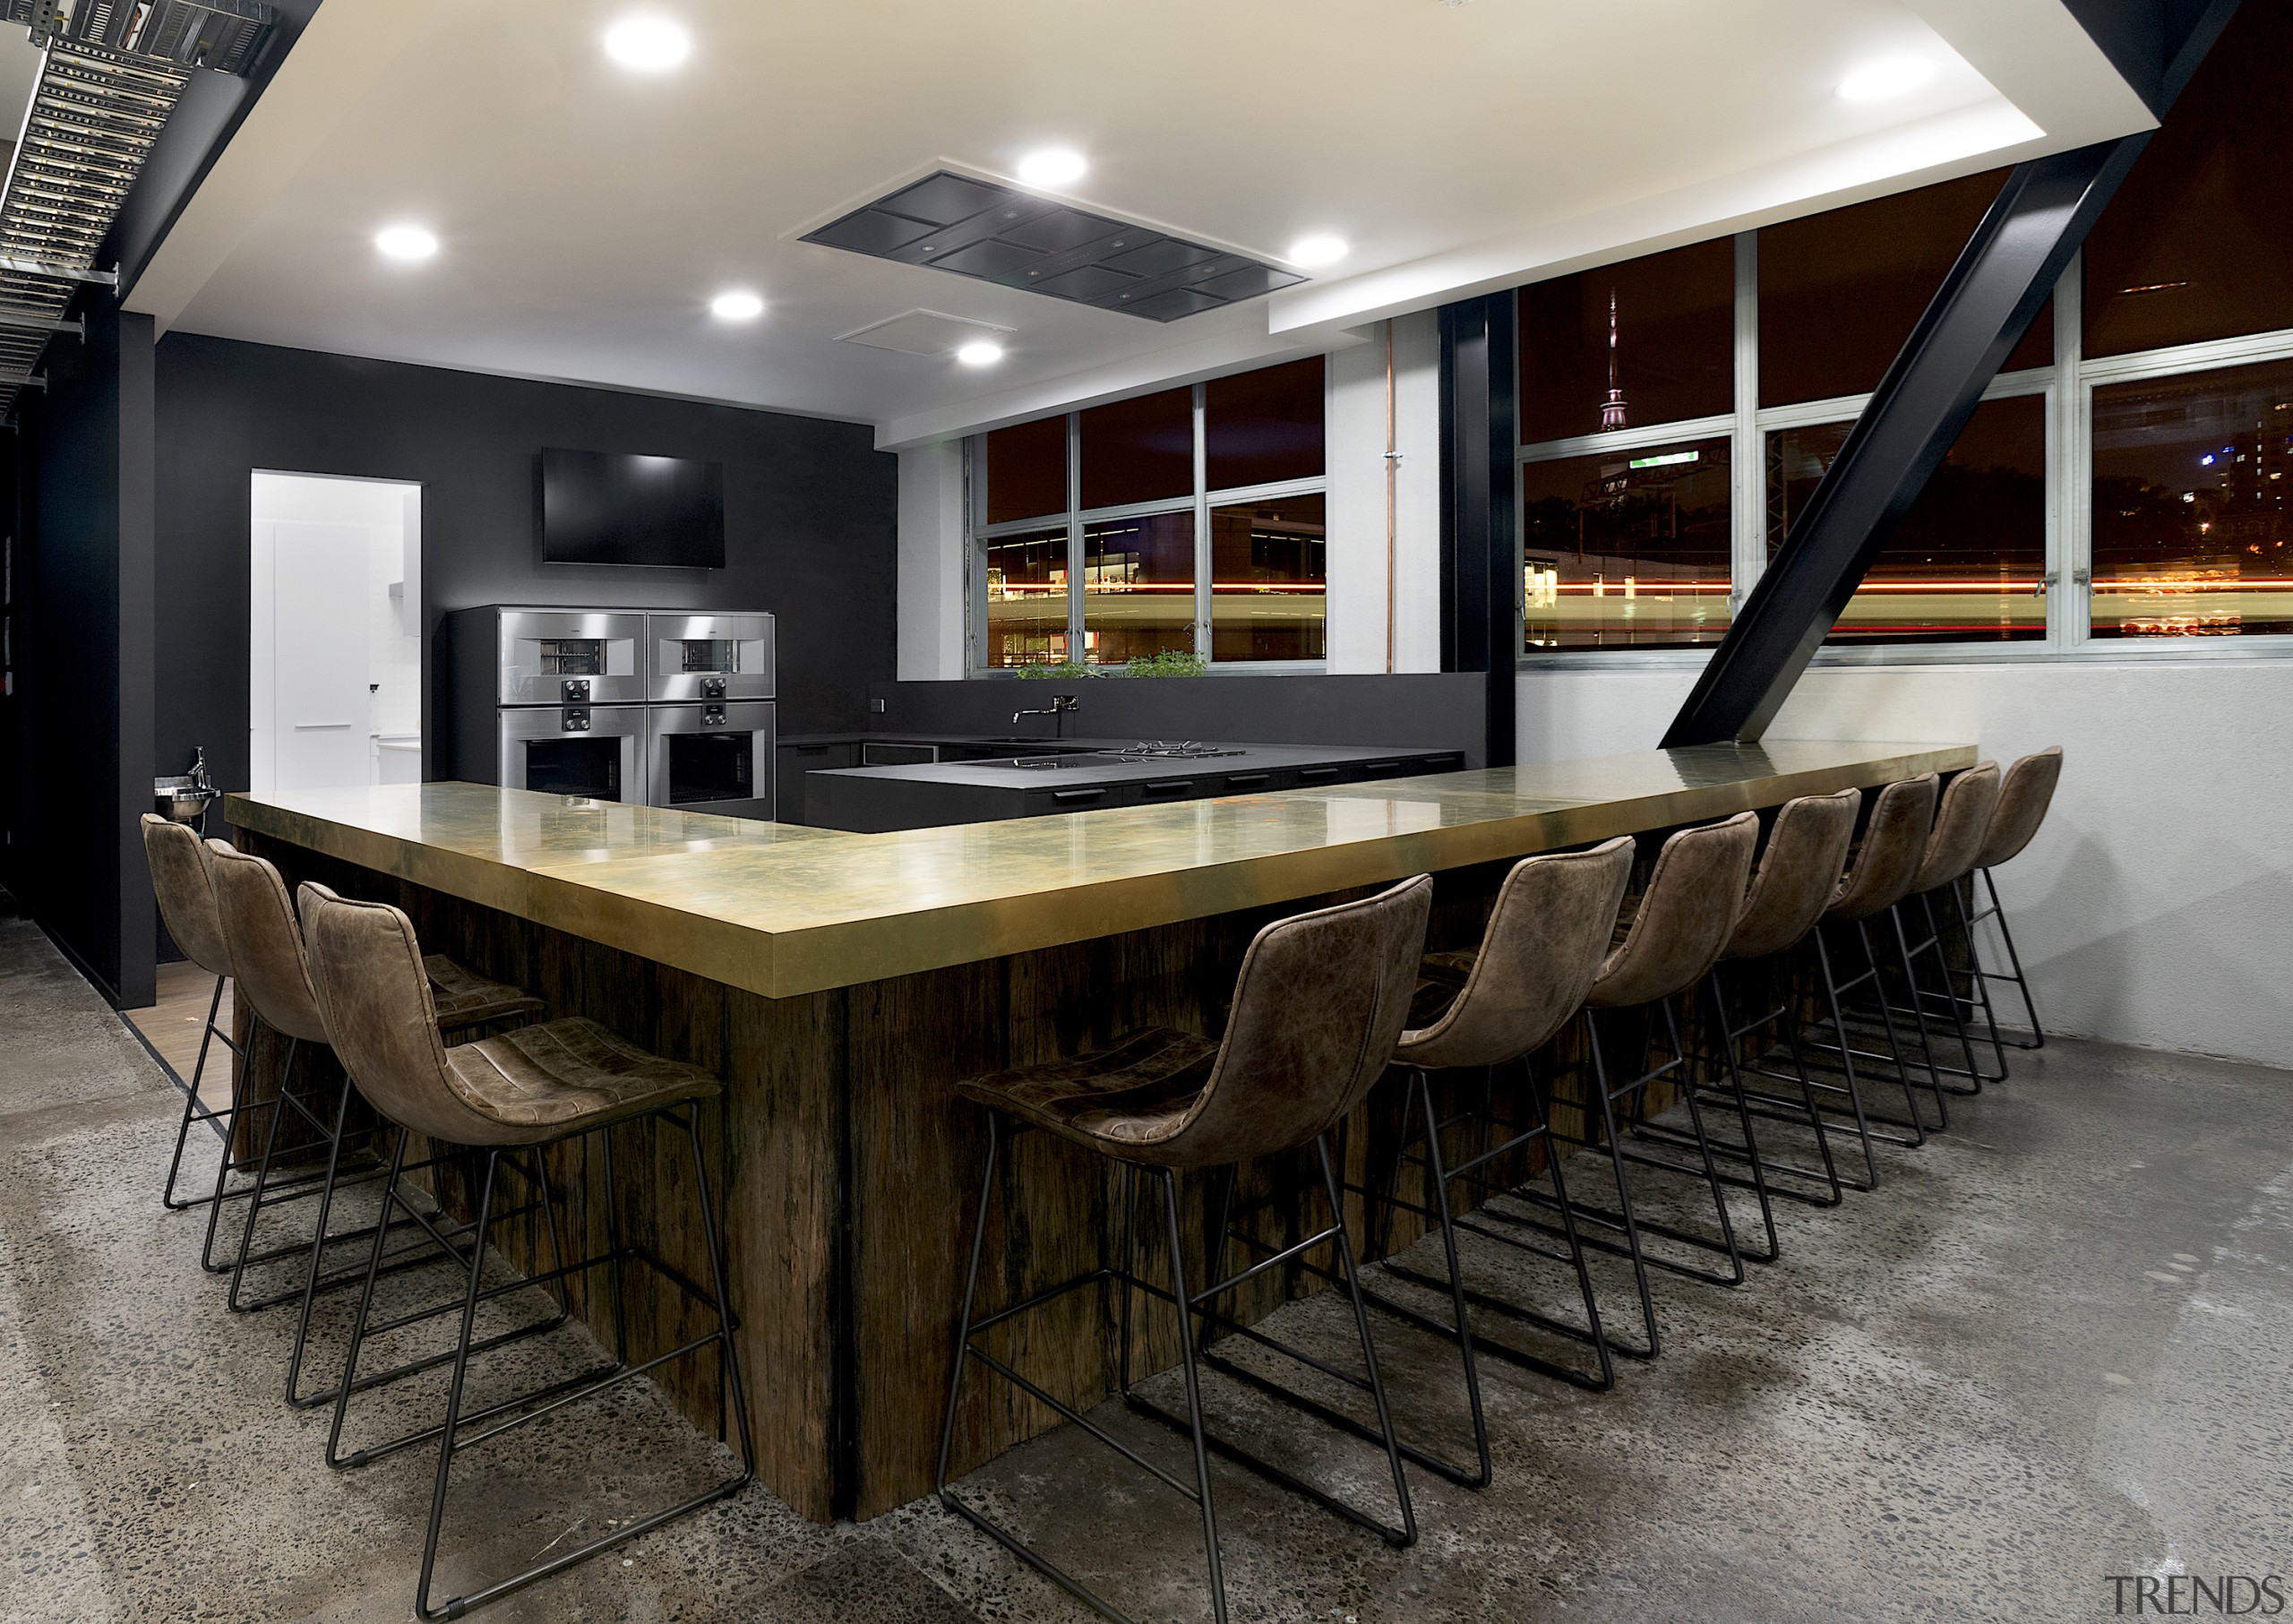 UnserHaus holds alls sorts of live events, cooking black, gray